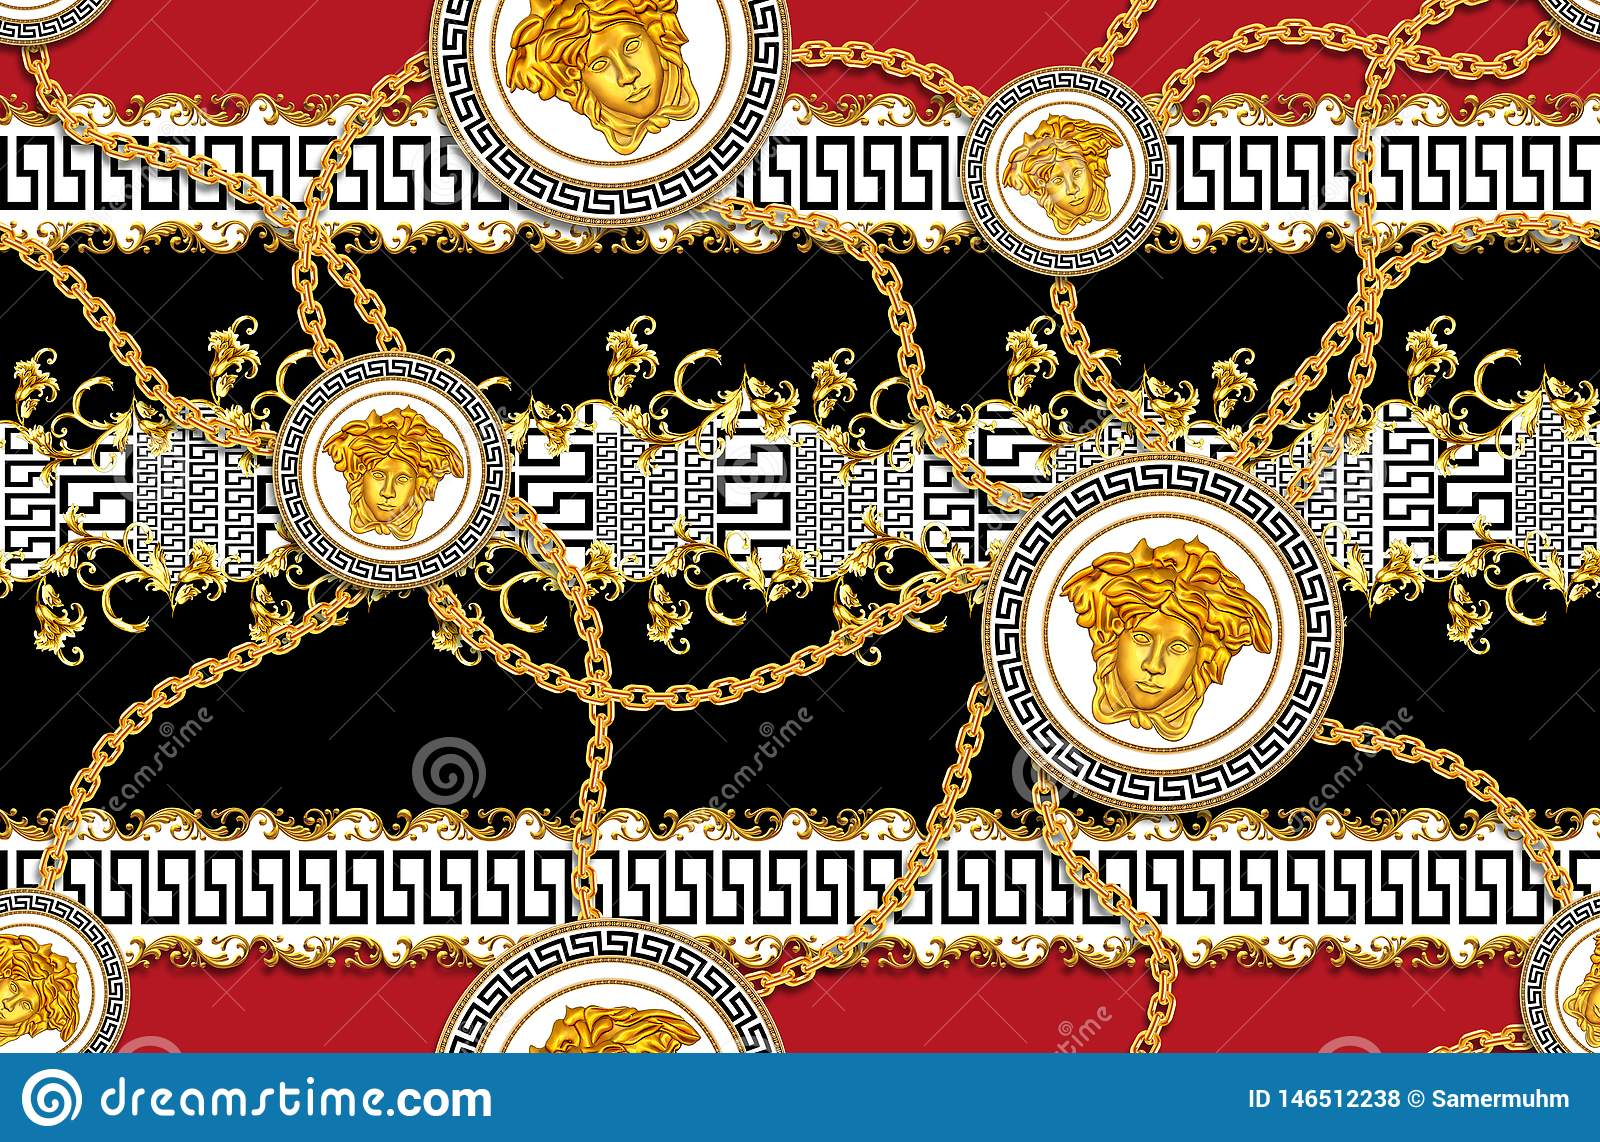 Seamless Pattern Of Golden Antique Decorative Barque With Versace